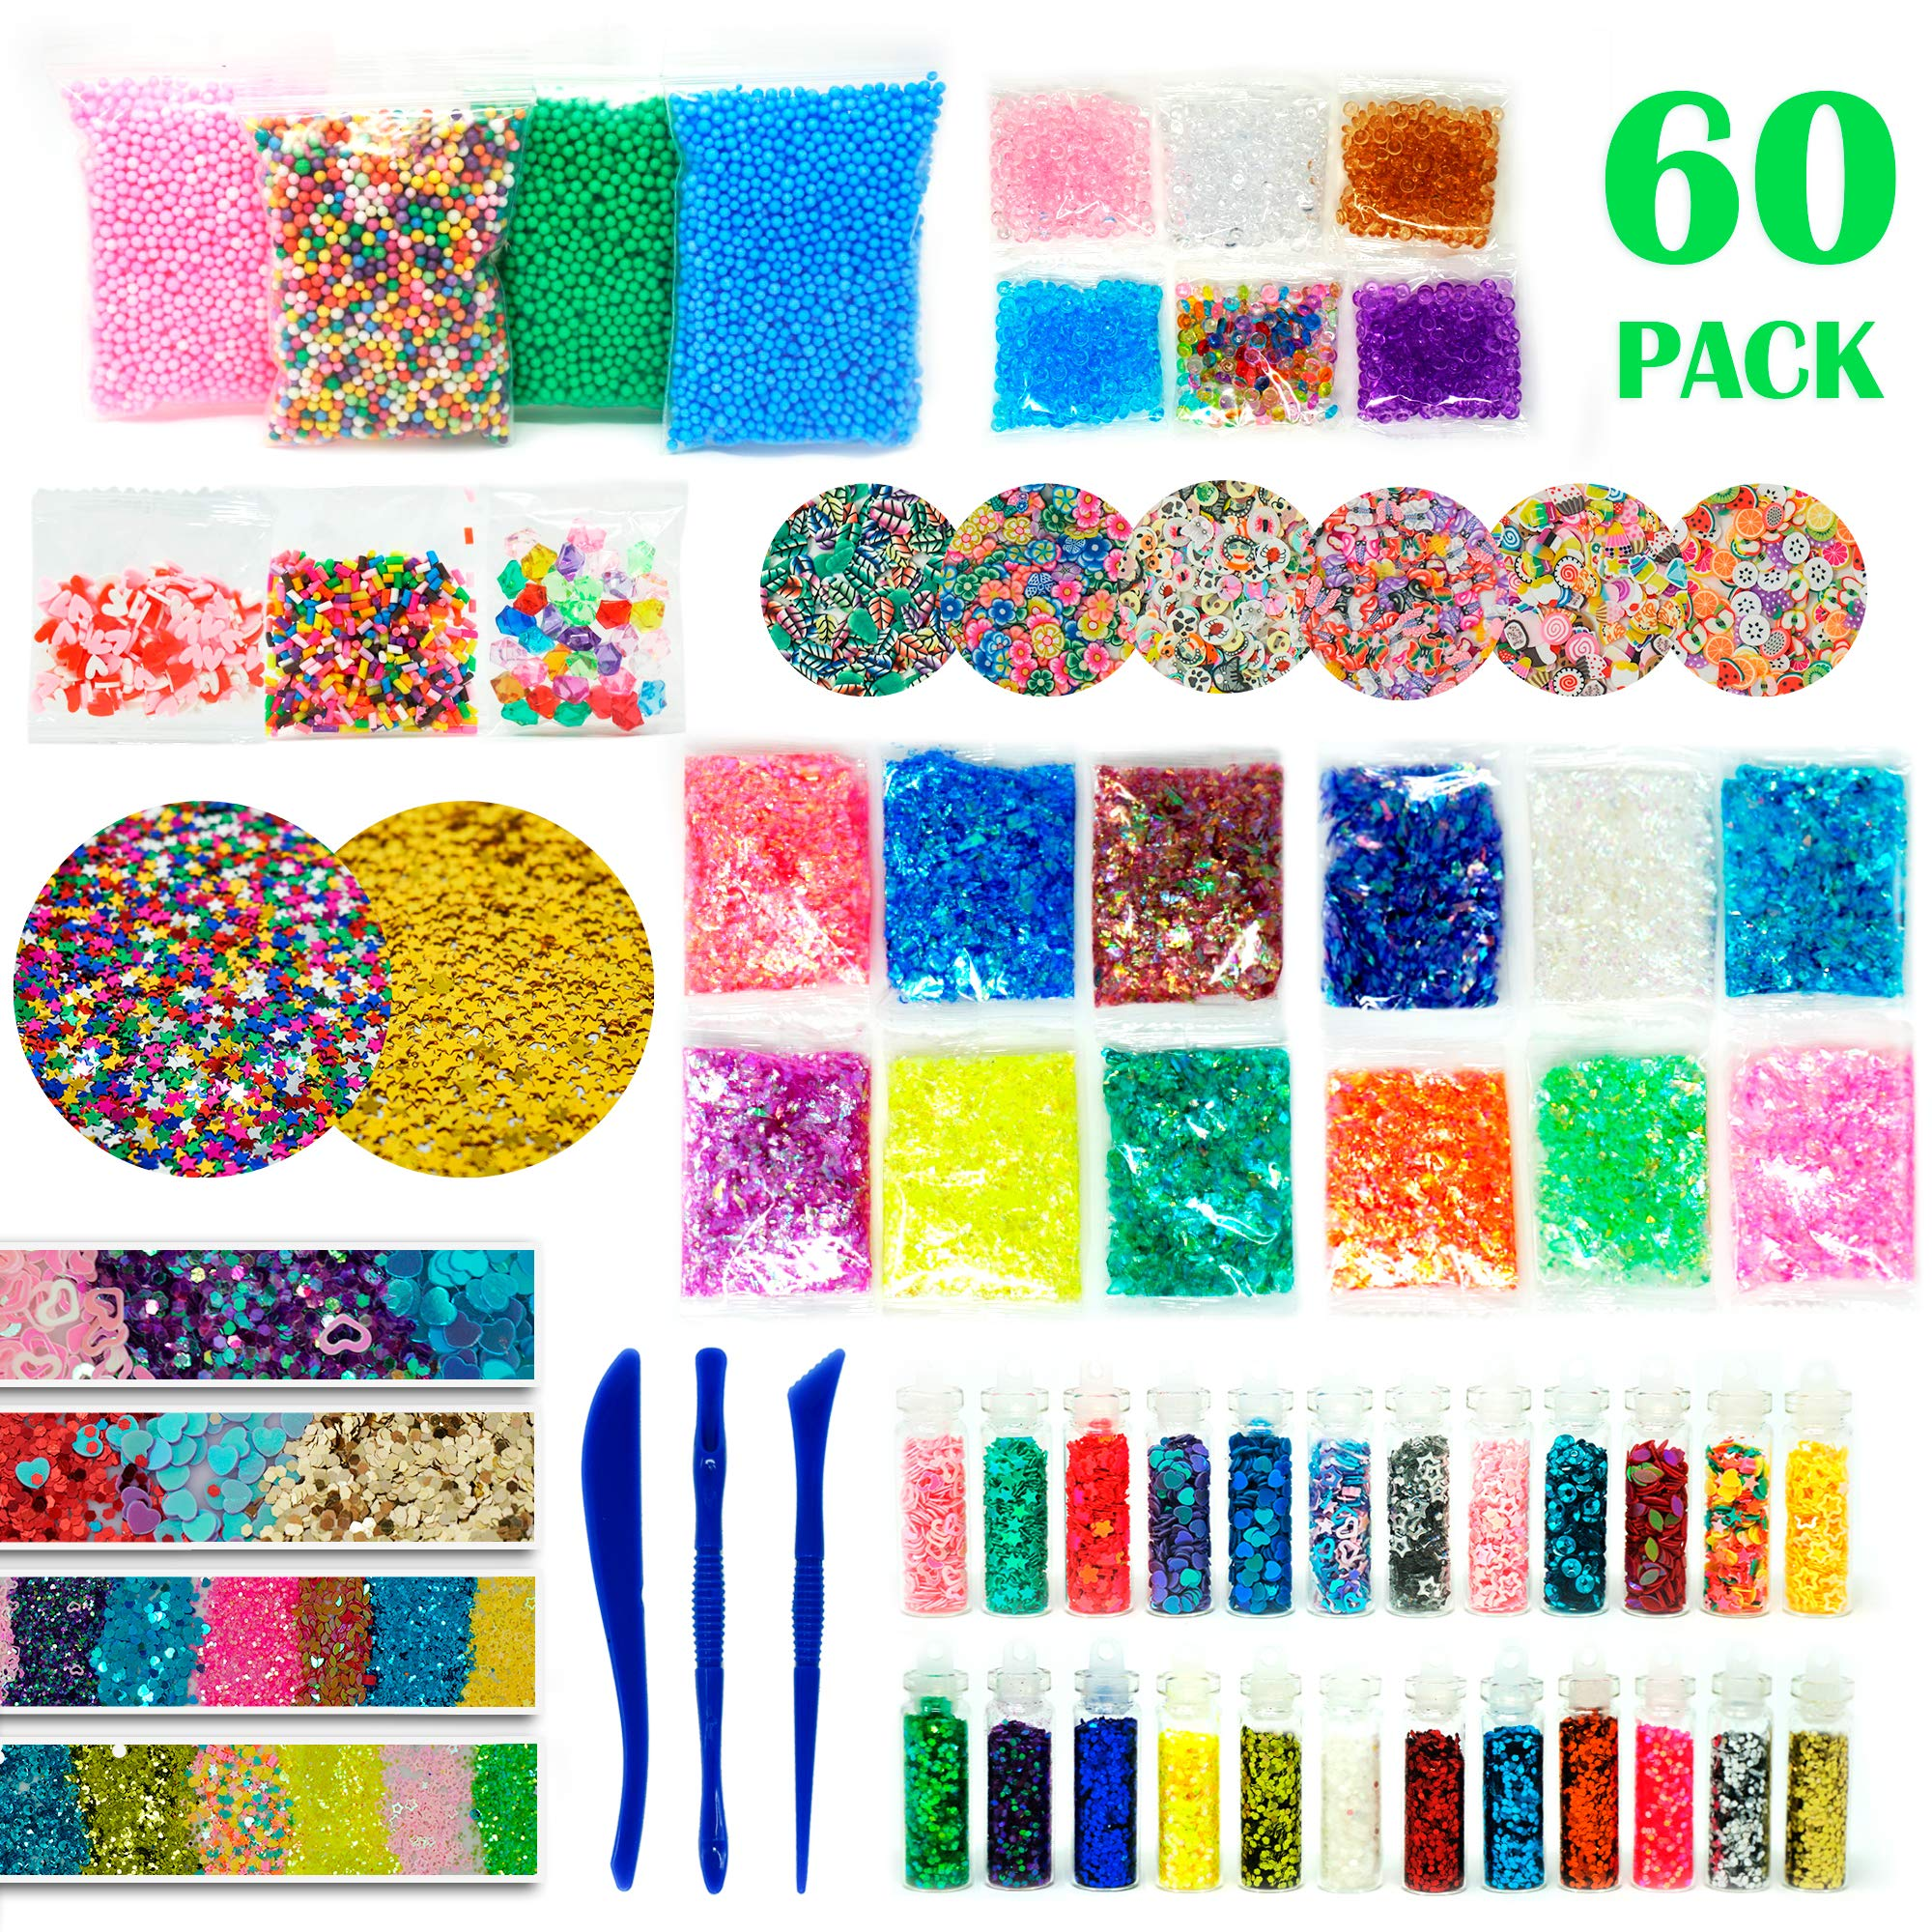 RockTown Toys Slime Supplies Kit Stuff - 60 PCS Foam Beads & Balls, Glitter, Fruit Slices, | Add Ins for Slime & Floam | Supply Kit for Slime Parties | Fun & Educational for Boys & Girls by RockTown Toys